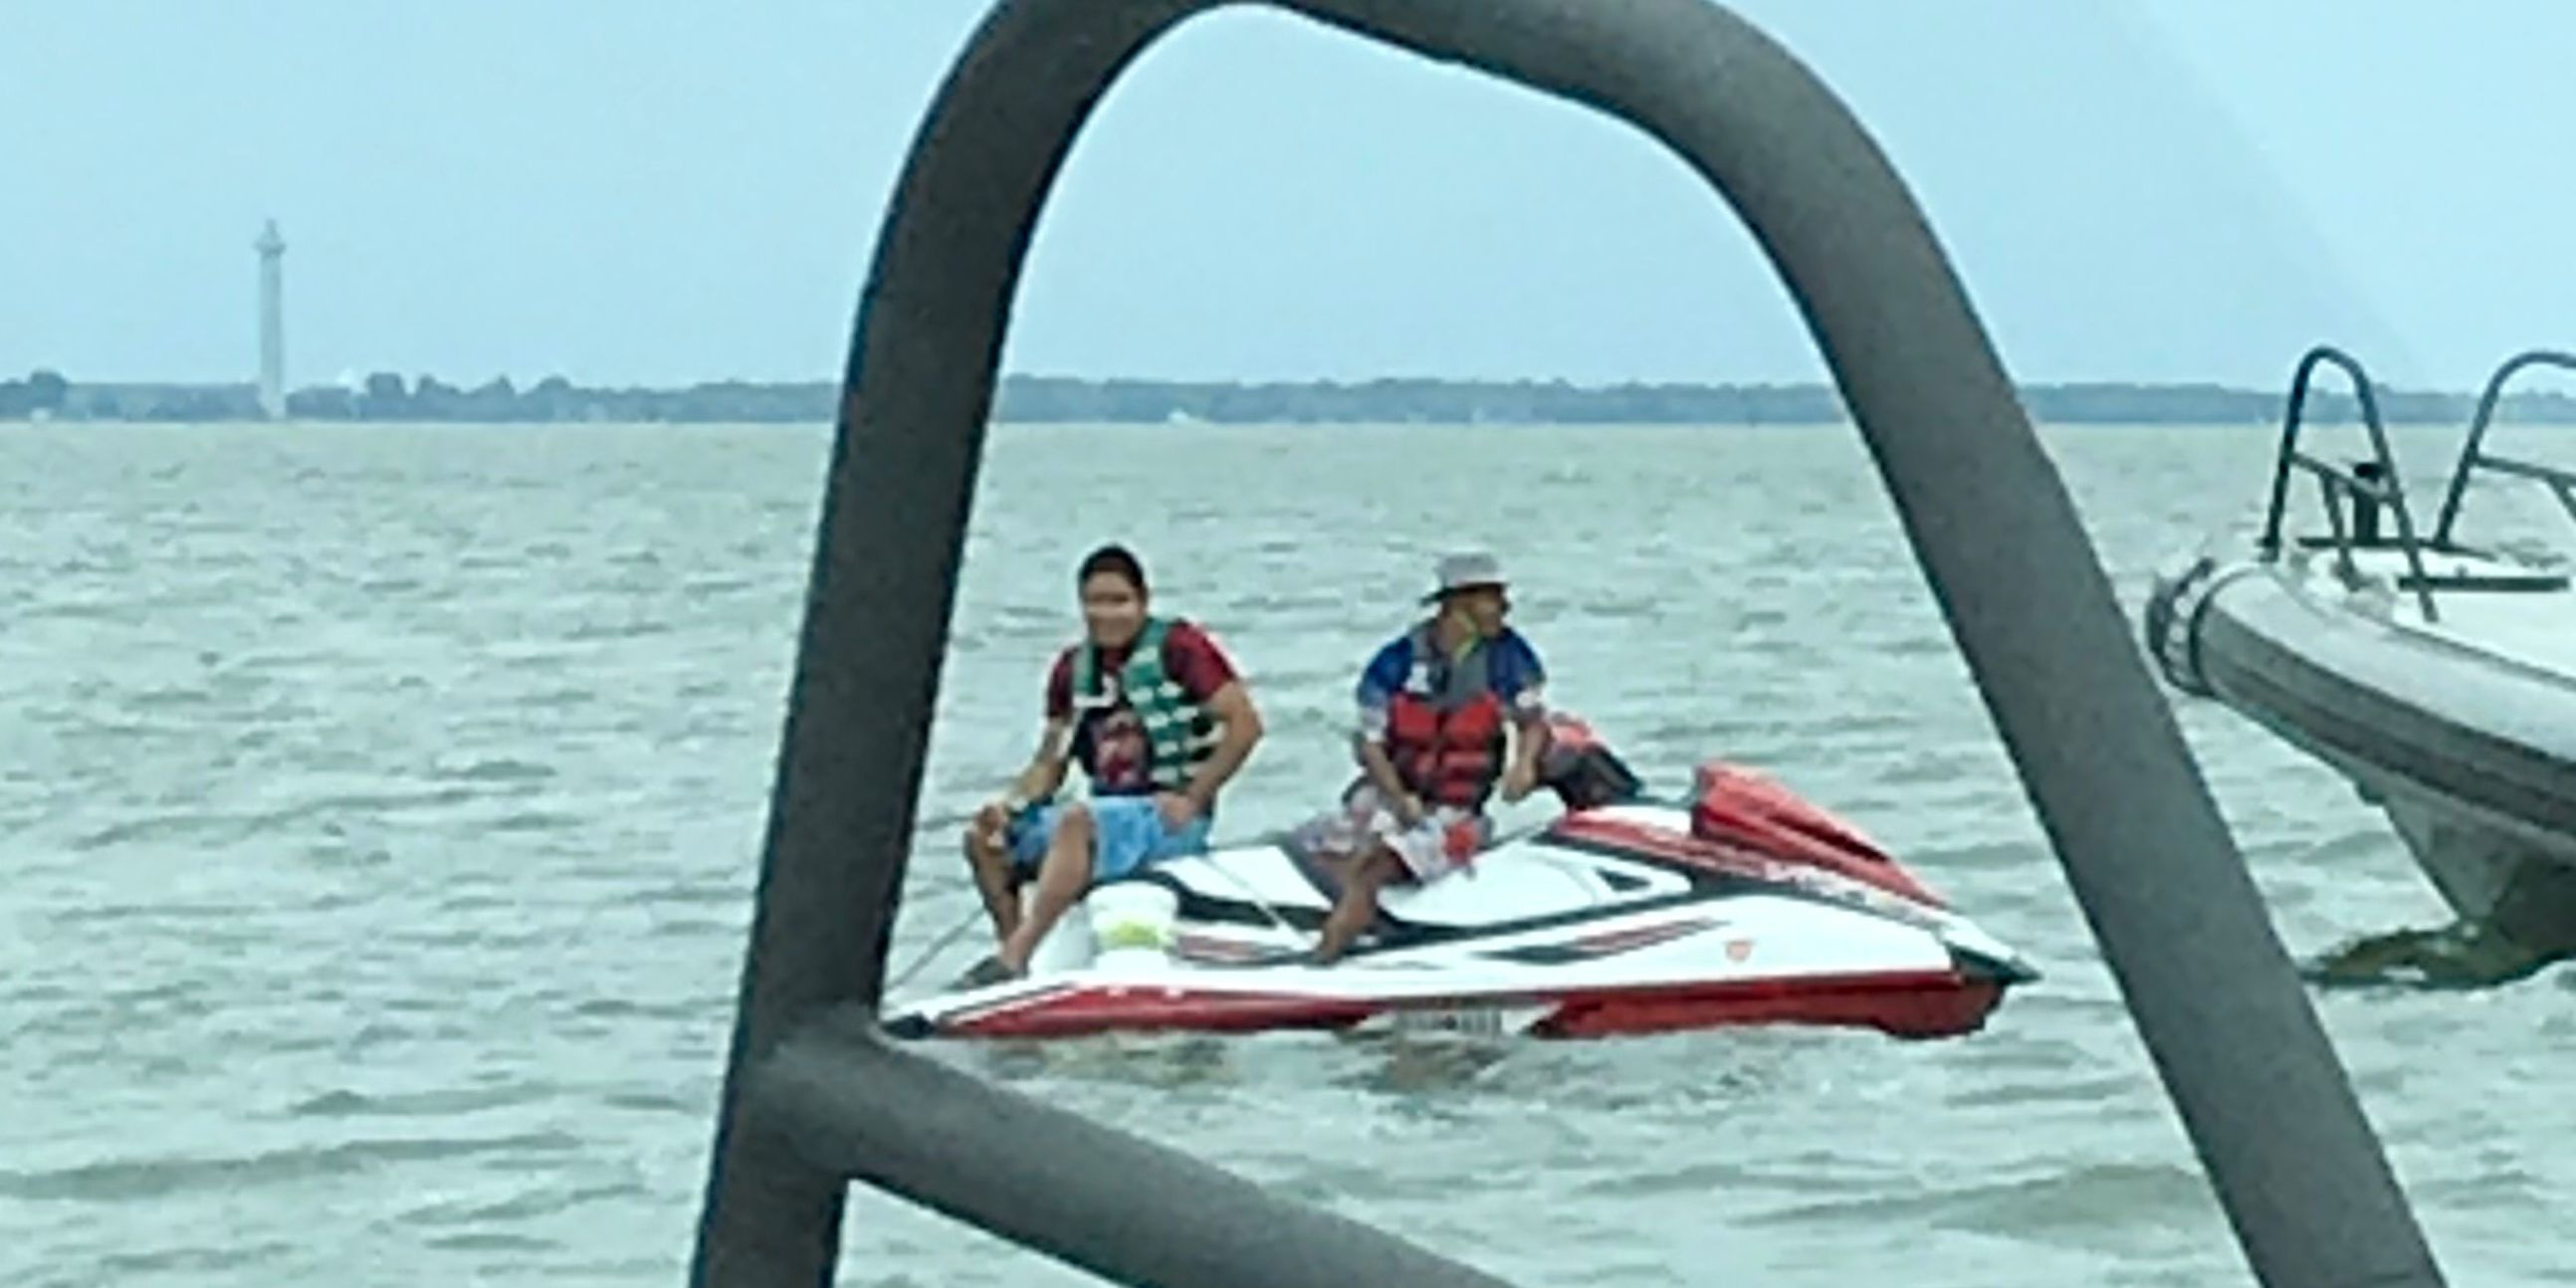 Undocumented immigrant arrested on jet ski near Port Clinton, turned over to ICE